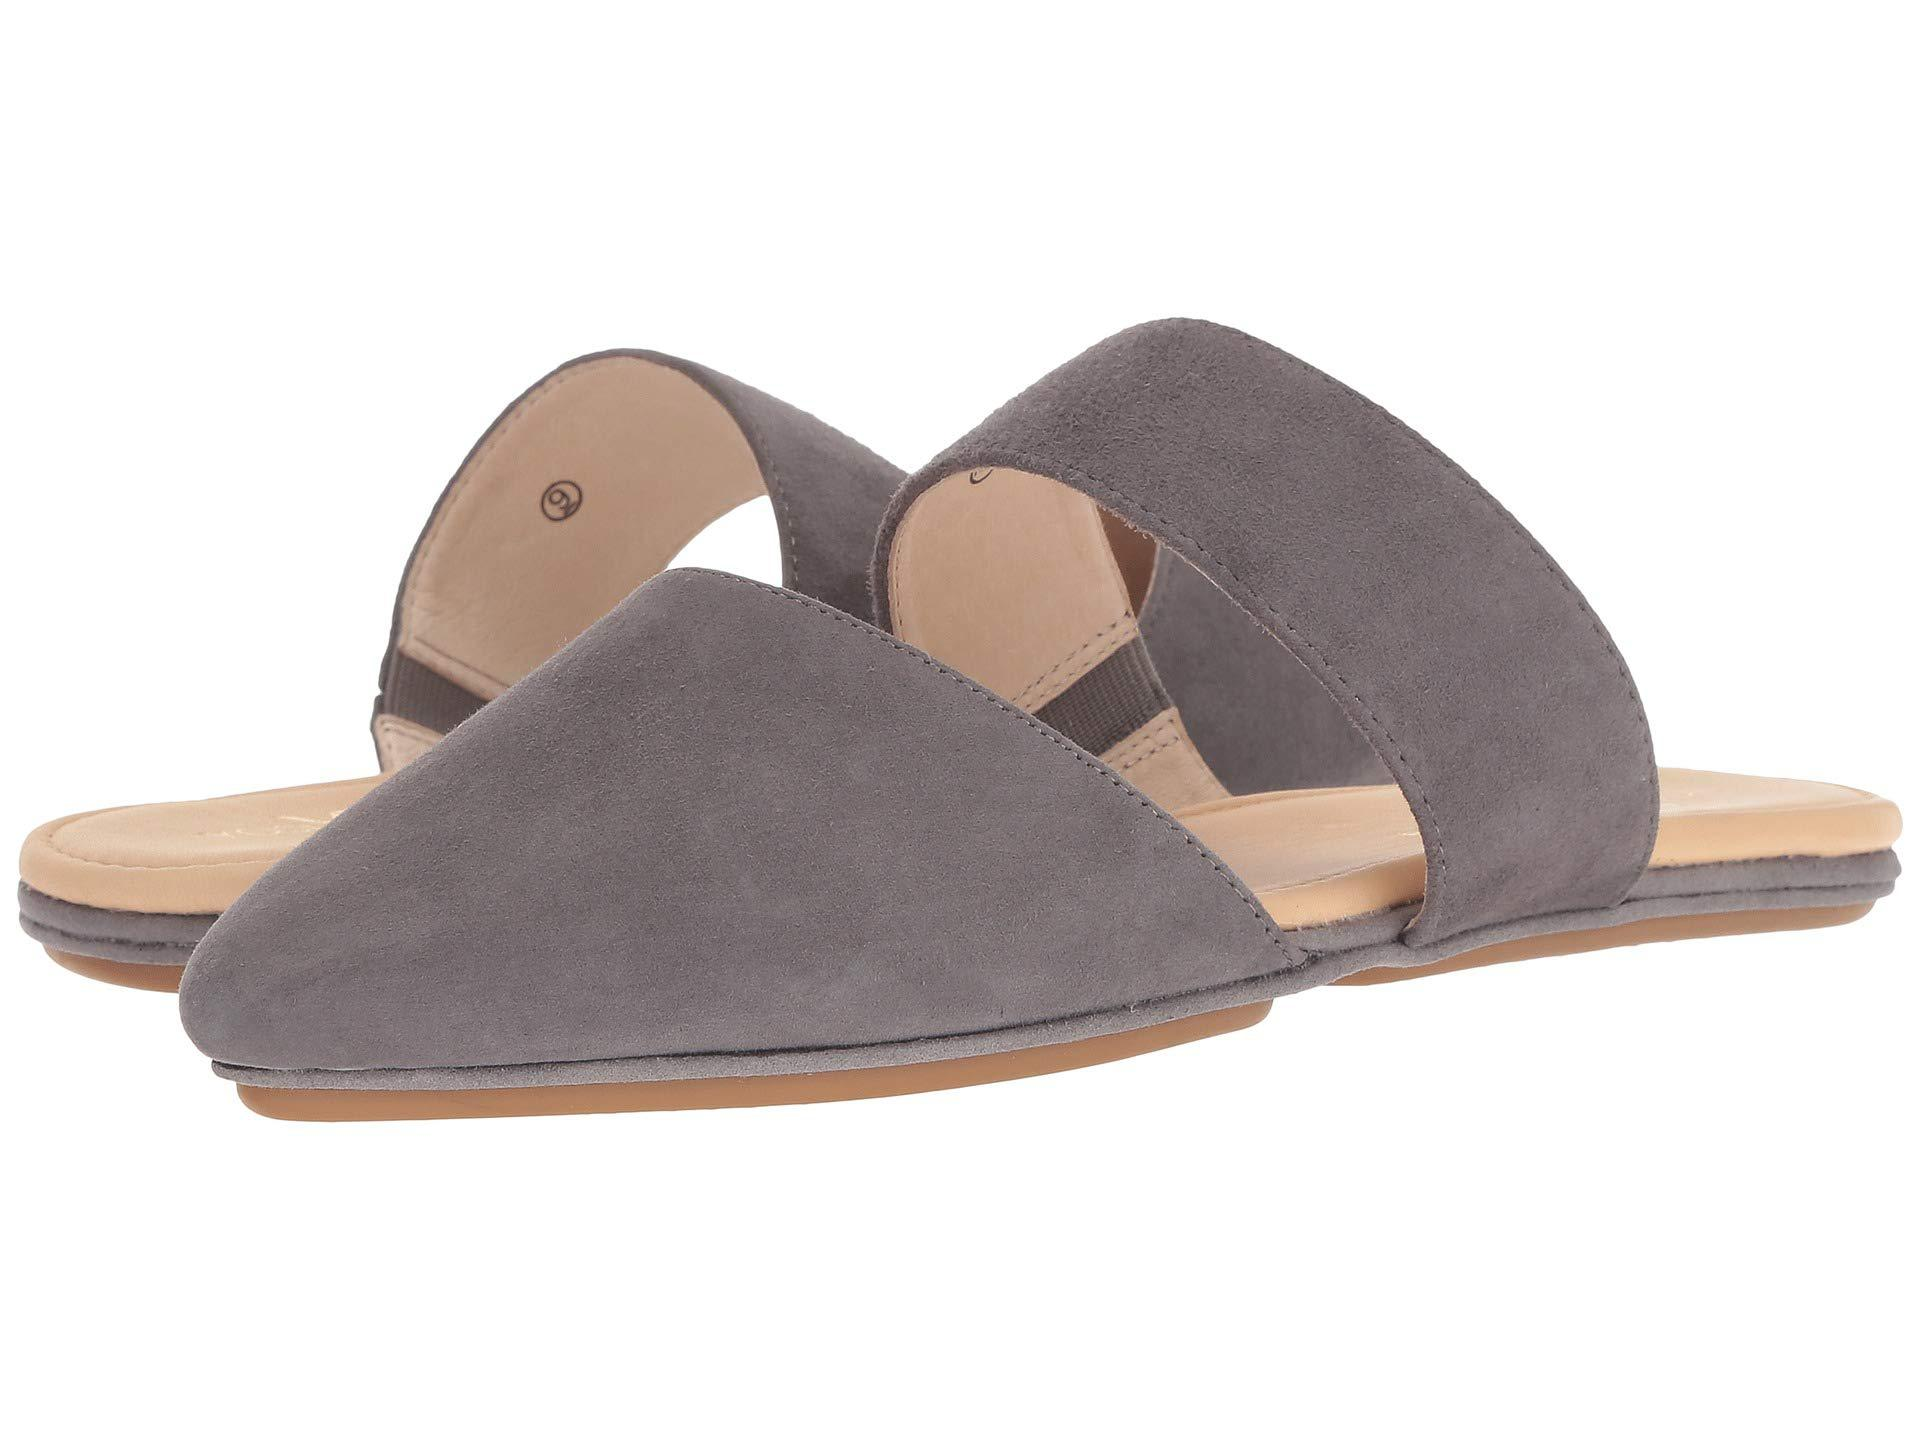 a05314fd96d Lyst - Yosi Samra Vicky in Gray - Save 10%